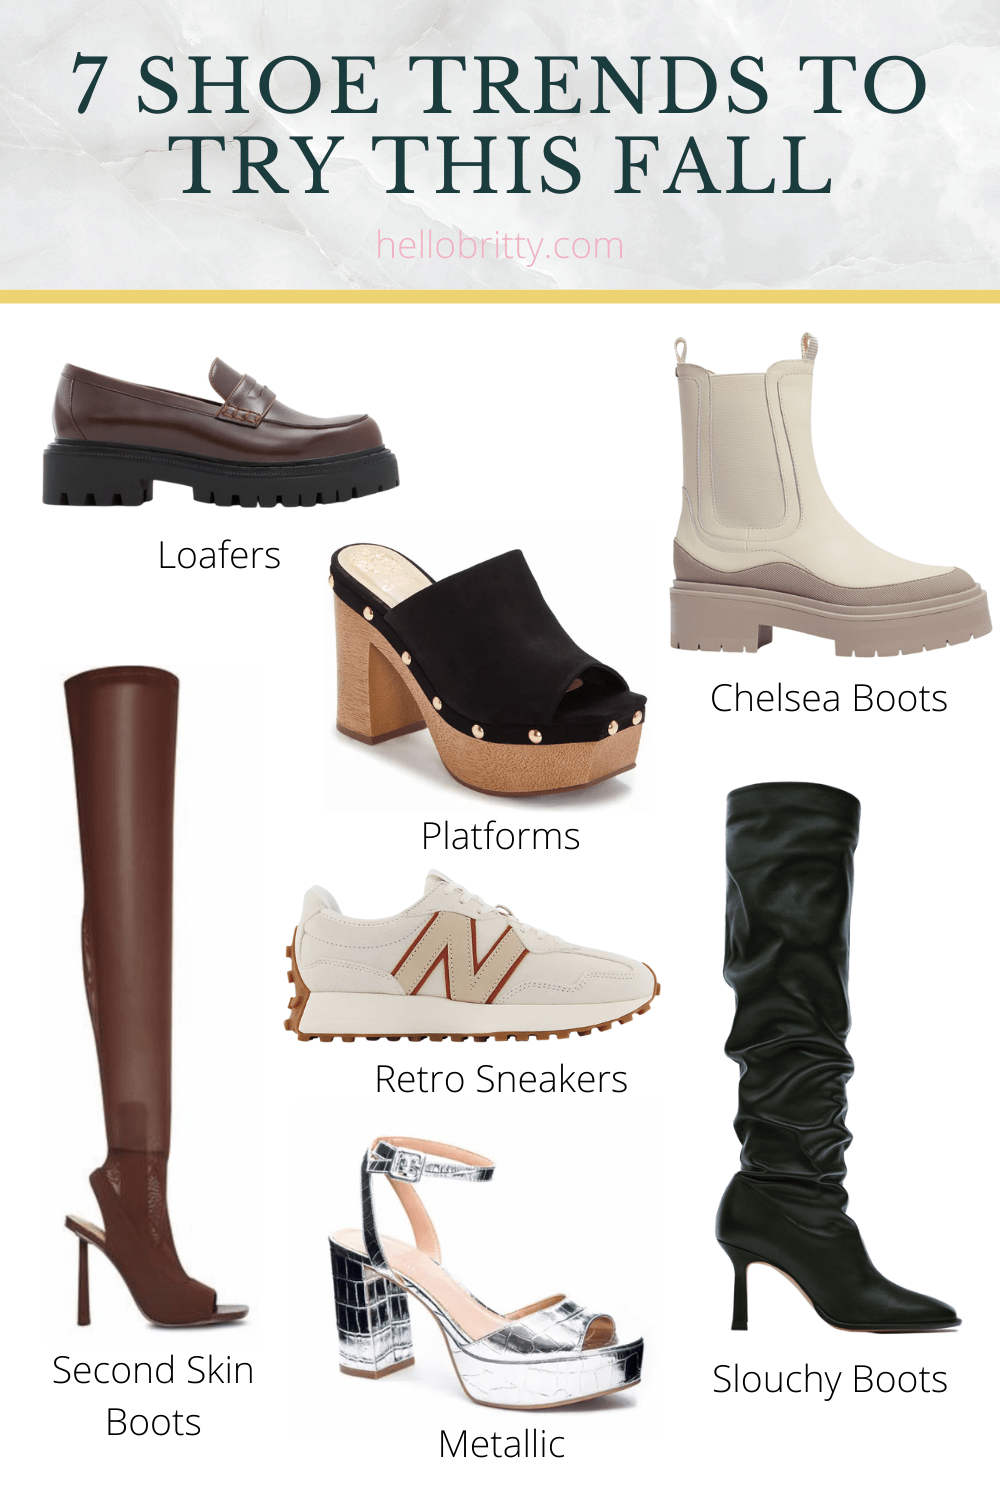 There's such a wide variety of shoe styles this fall - everything from retro sneakers to clunky loafers to thigh-high boots. There's literally something for everyone! Find your fall shoe inspiration, on the blog now.